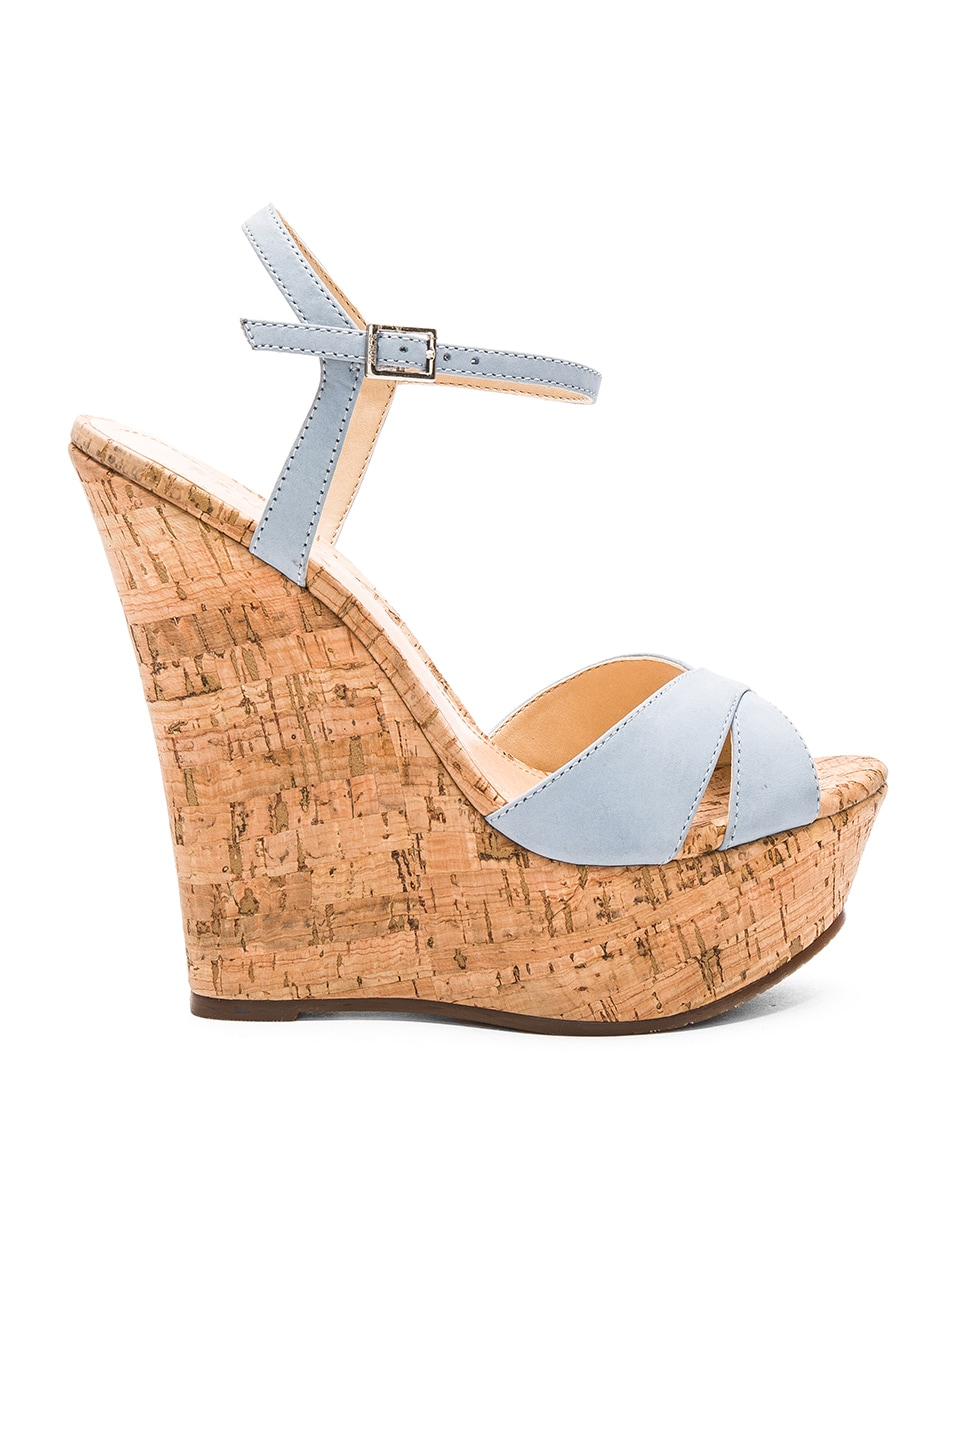 Schutz Emiliana Wedge in Jeans